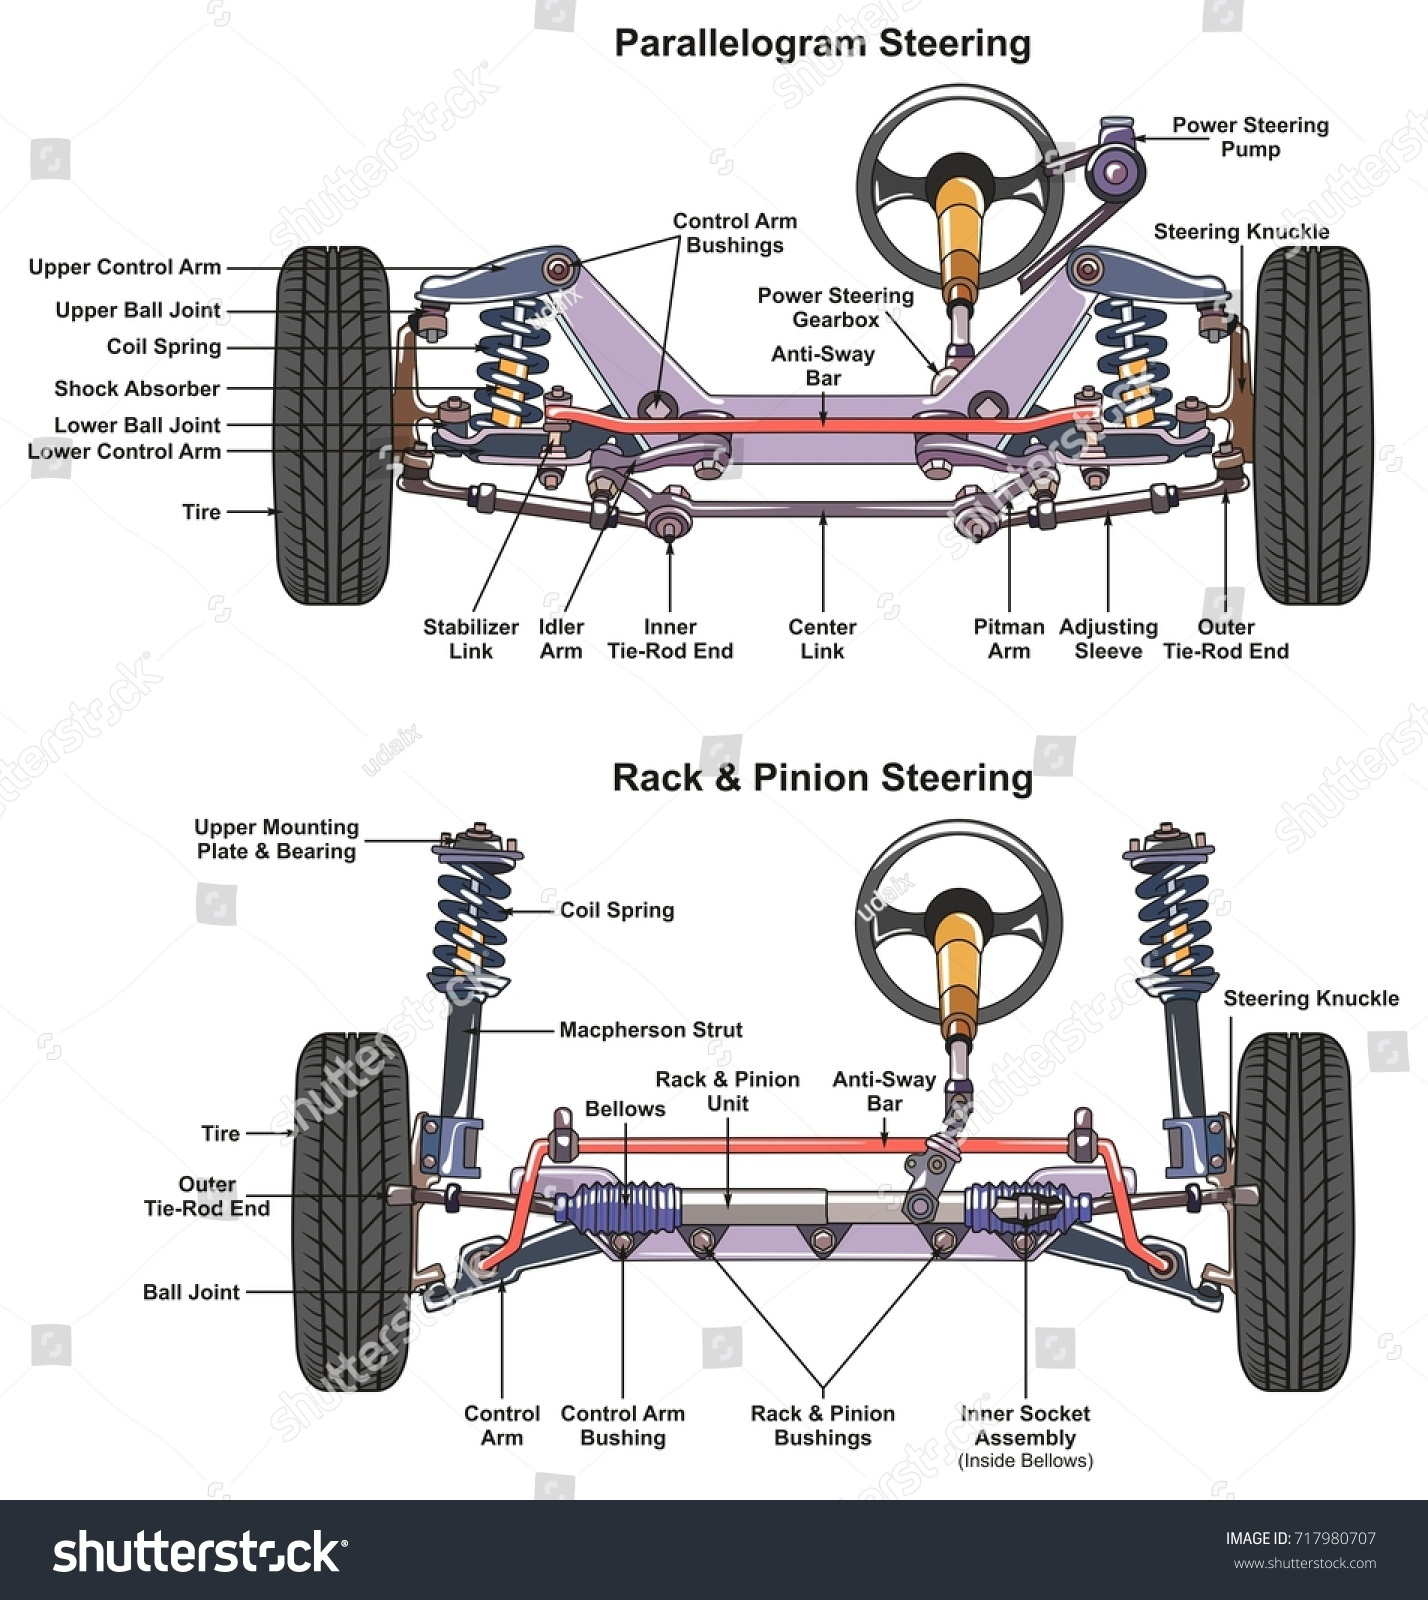 press conversion cac and rack pinion rackandpinion control total alston rckps tcp chris power products s prkr fd chassisworks